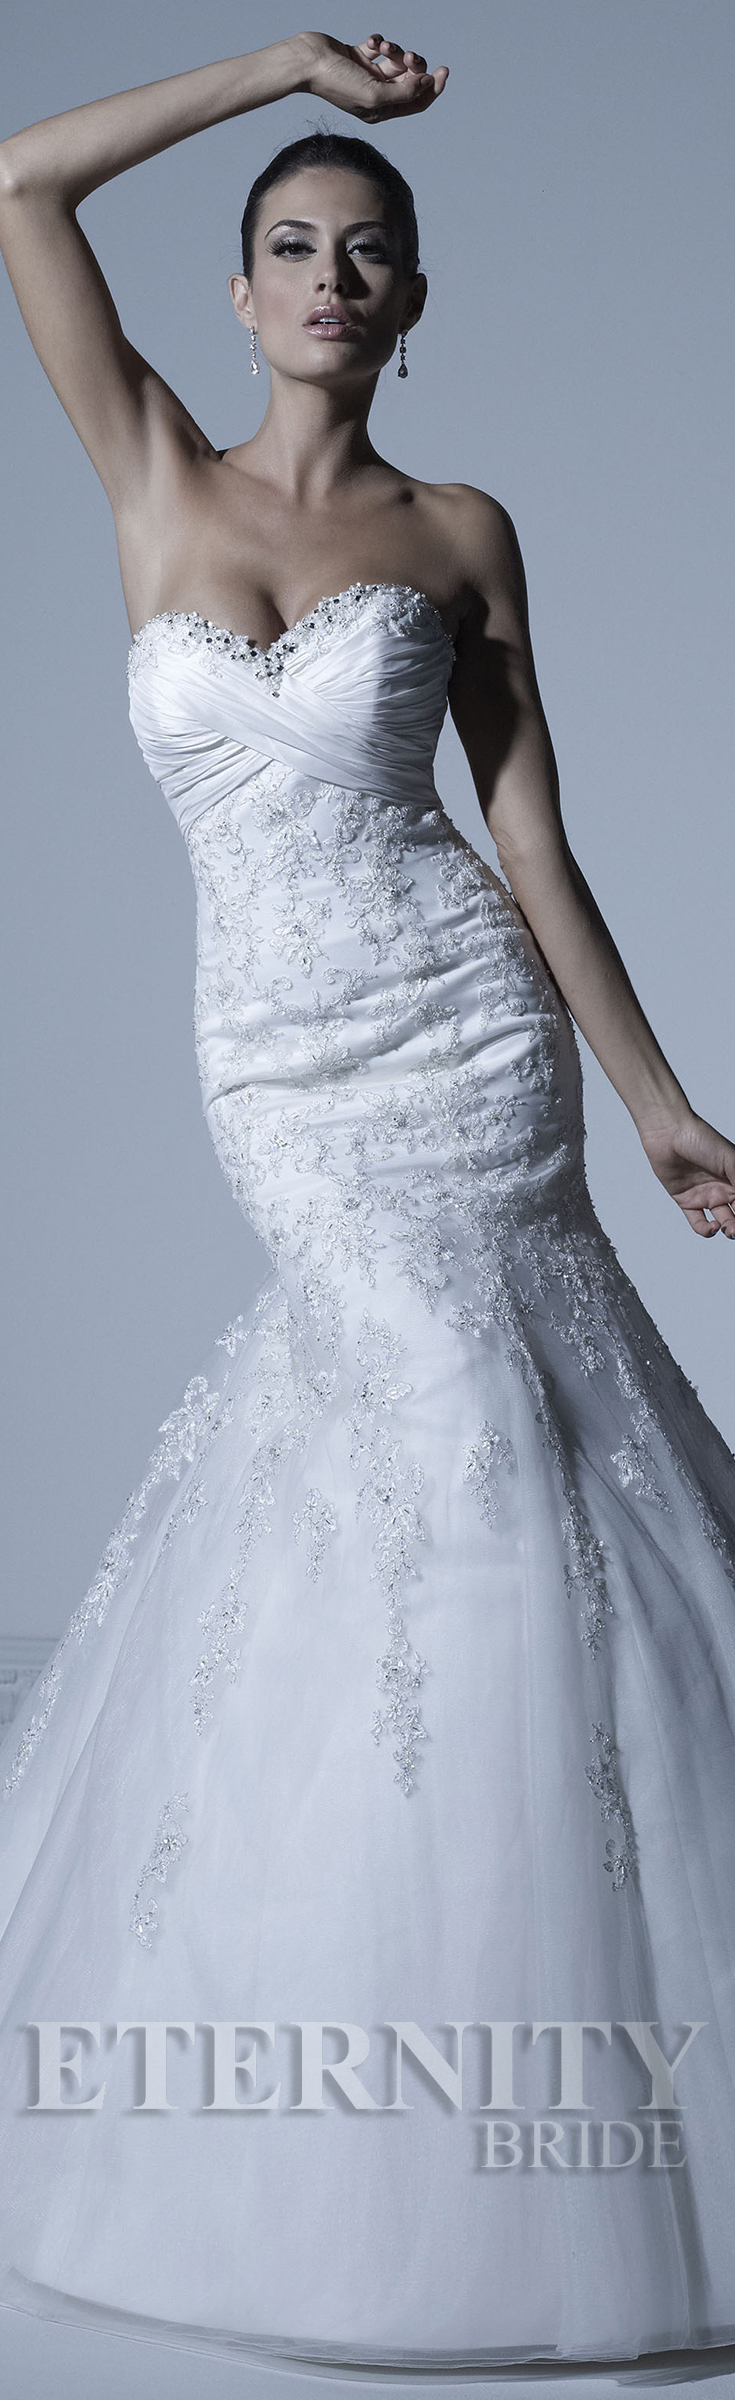 D5132 wedding dress from Eternity Bride. View more of our beautiful wedding dresses at www.eternitybridal.com